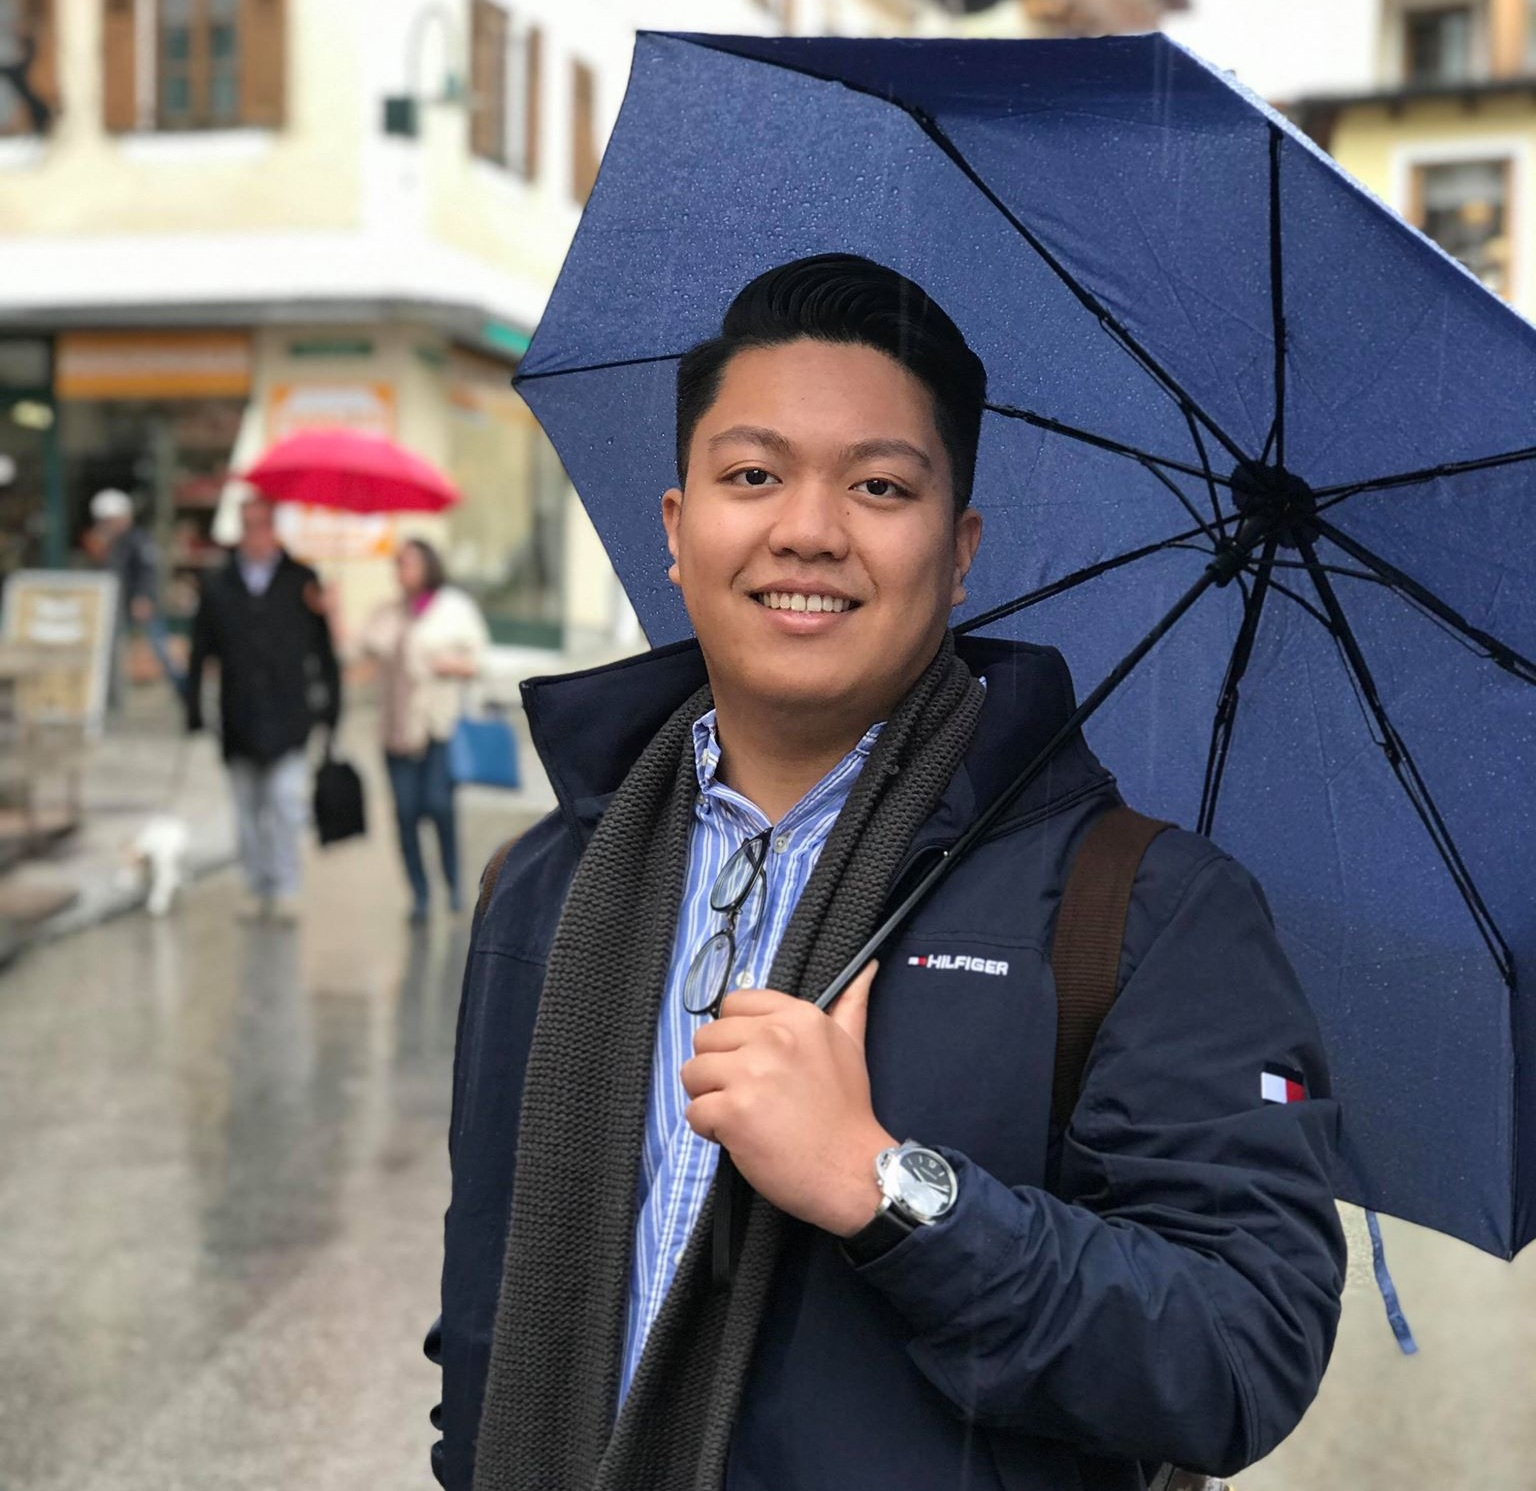 Arthur Saulong - Localisation Specialist, PhilippinesBusiness Administration Major from the University of the PhilippinesProficient in Legal, Government Liaising, and Deal BrokerageKnowledgeable in Flask and Serverless